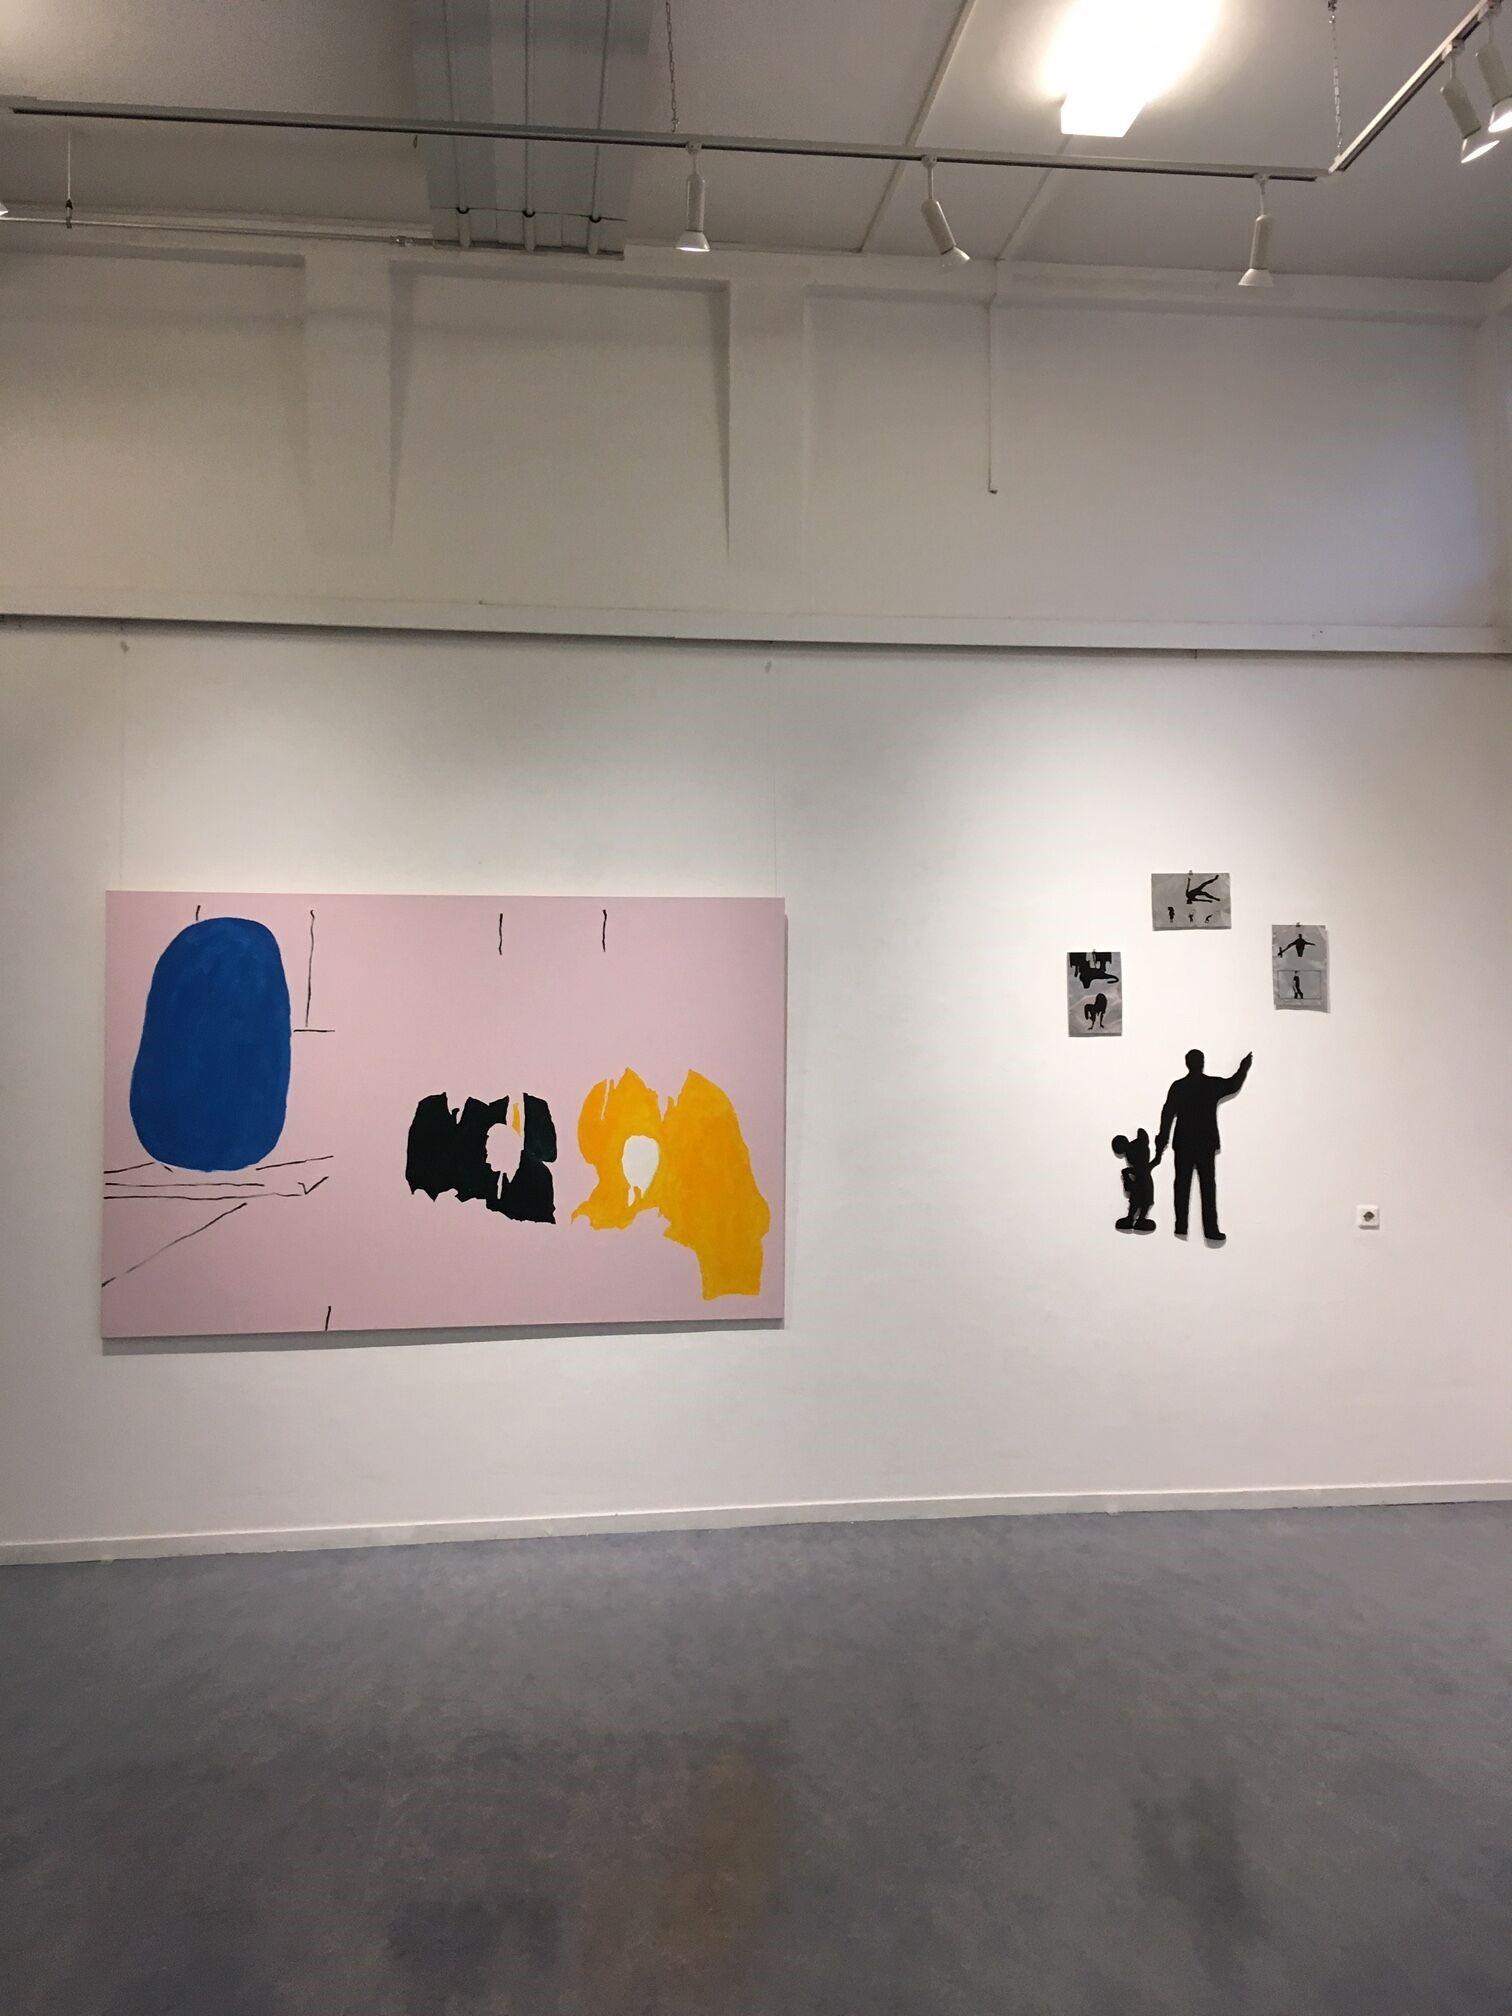 Overview Kunsthal Hof 88 Almelo. Left: Monolith II, 2018, enamel on canvas, 150 x 230 cm. Right: Mickey Mouse installation (study).